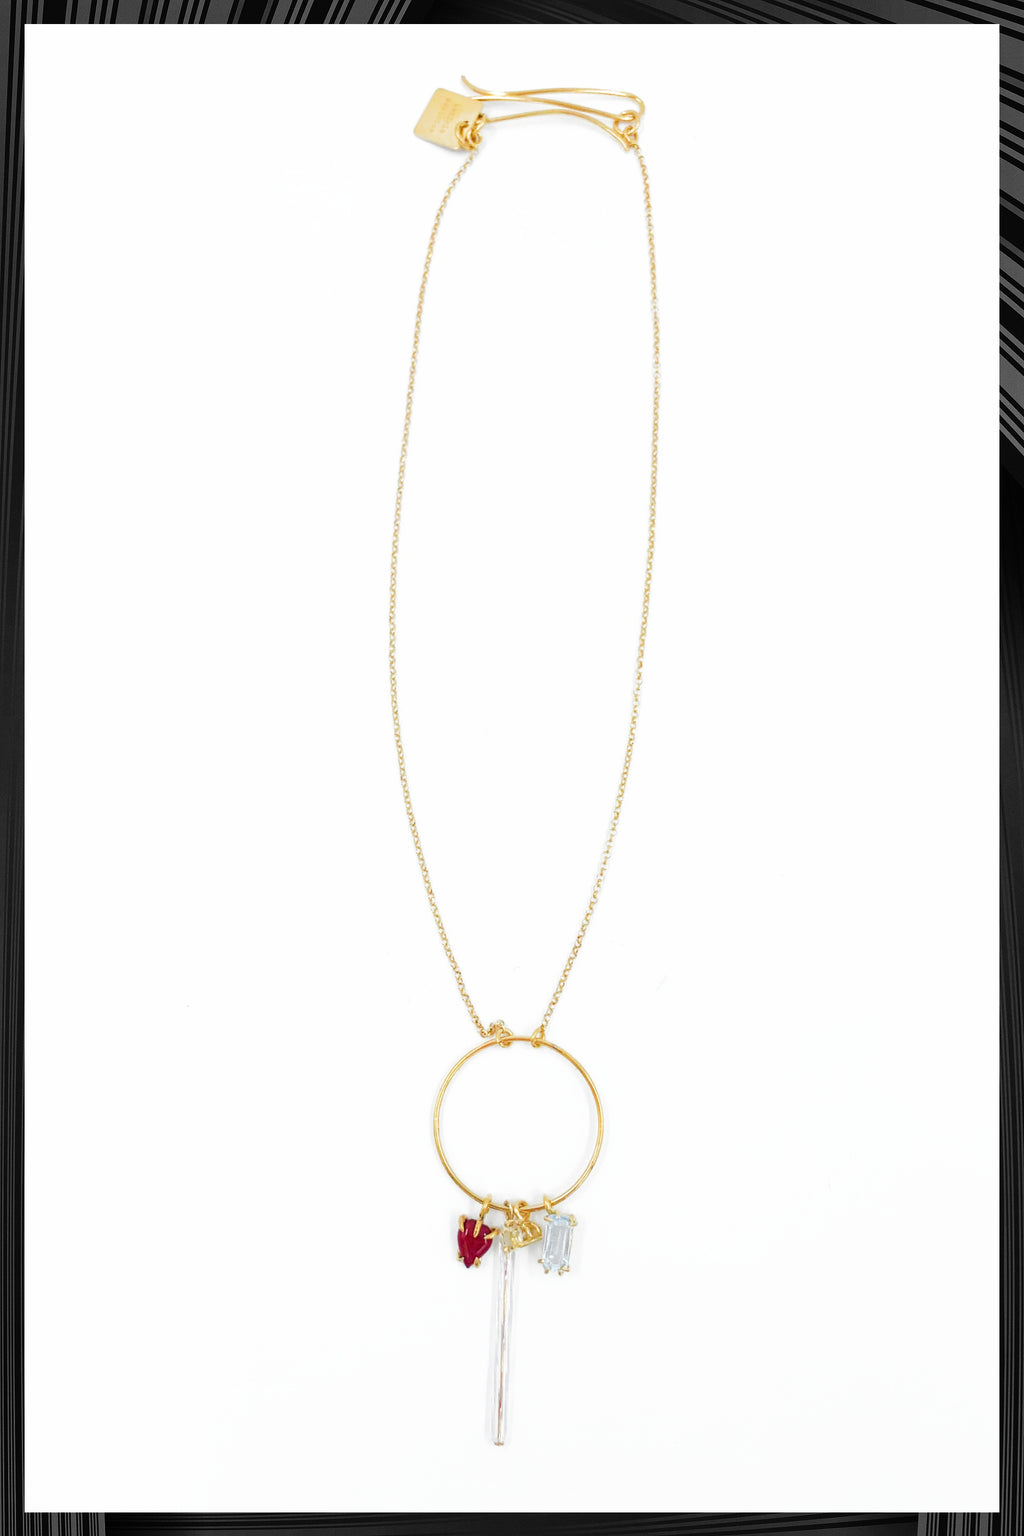 Tomorrow Necklace | Free Delivery - Quick Shipping